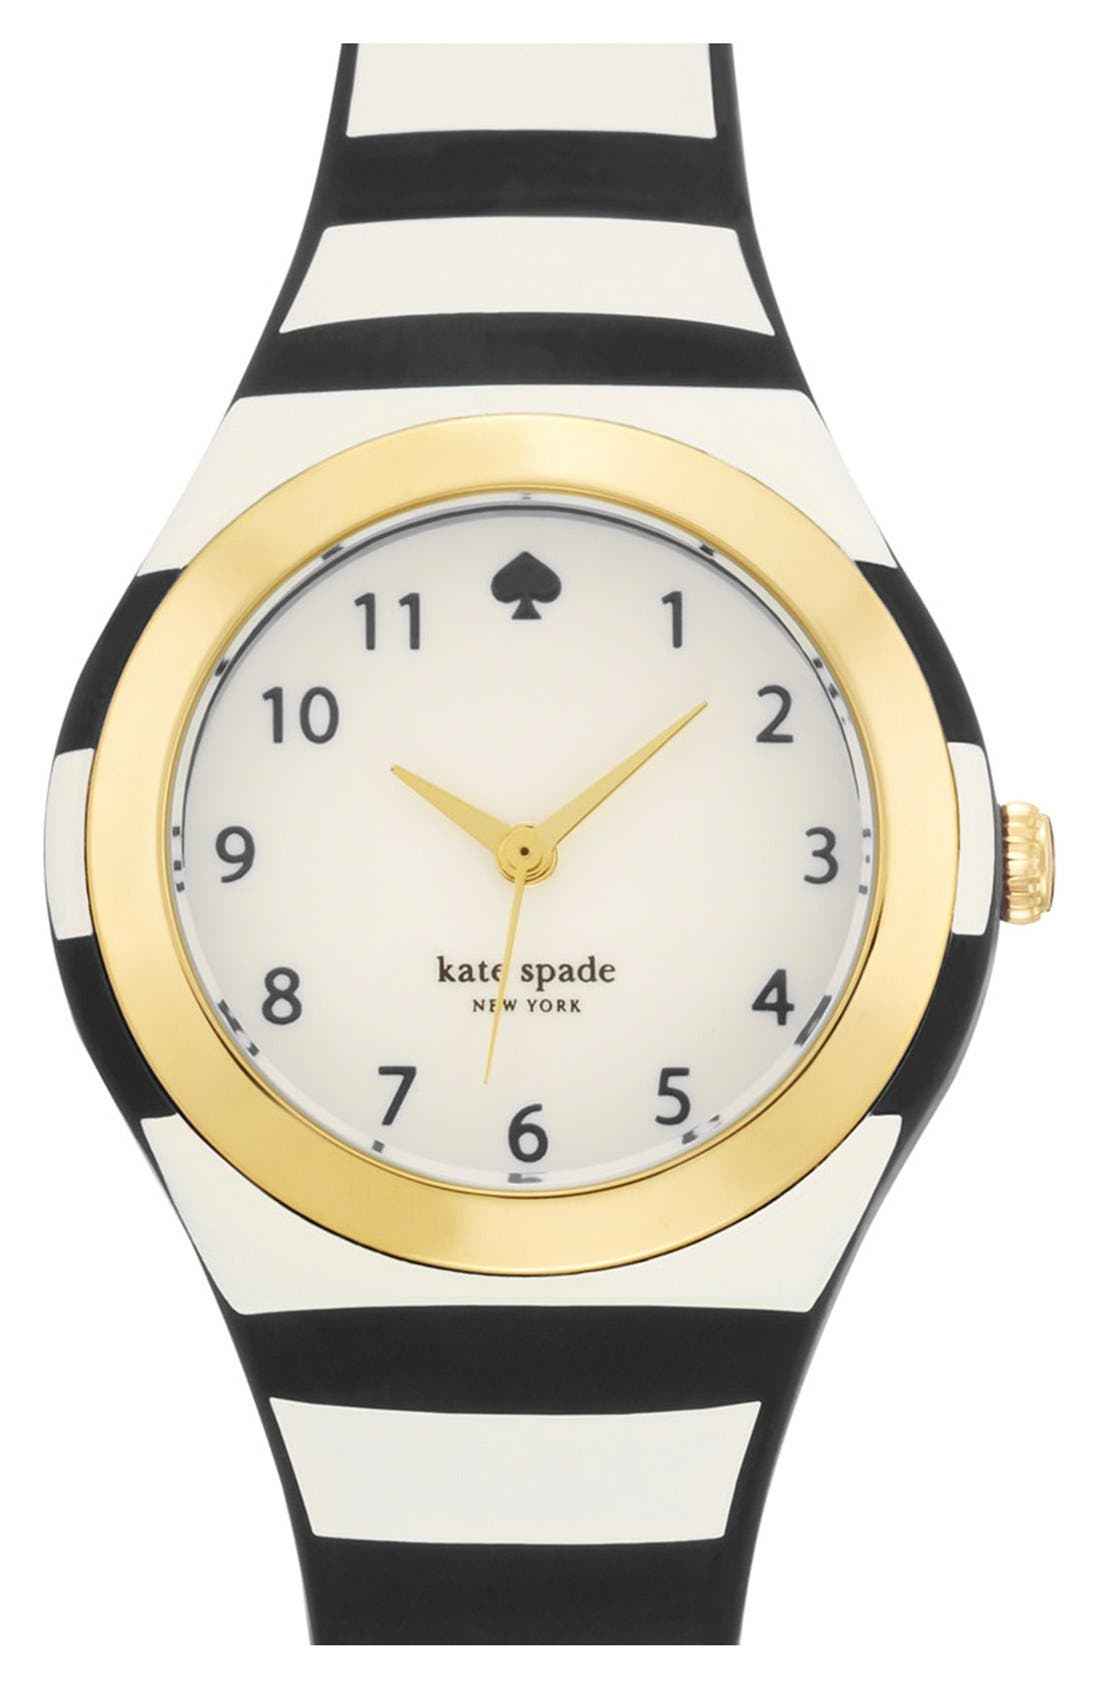 KATE SPADE NEW YORK 'rumsey' plastic strap watch,